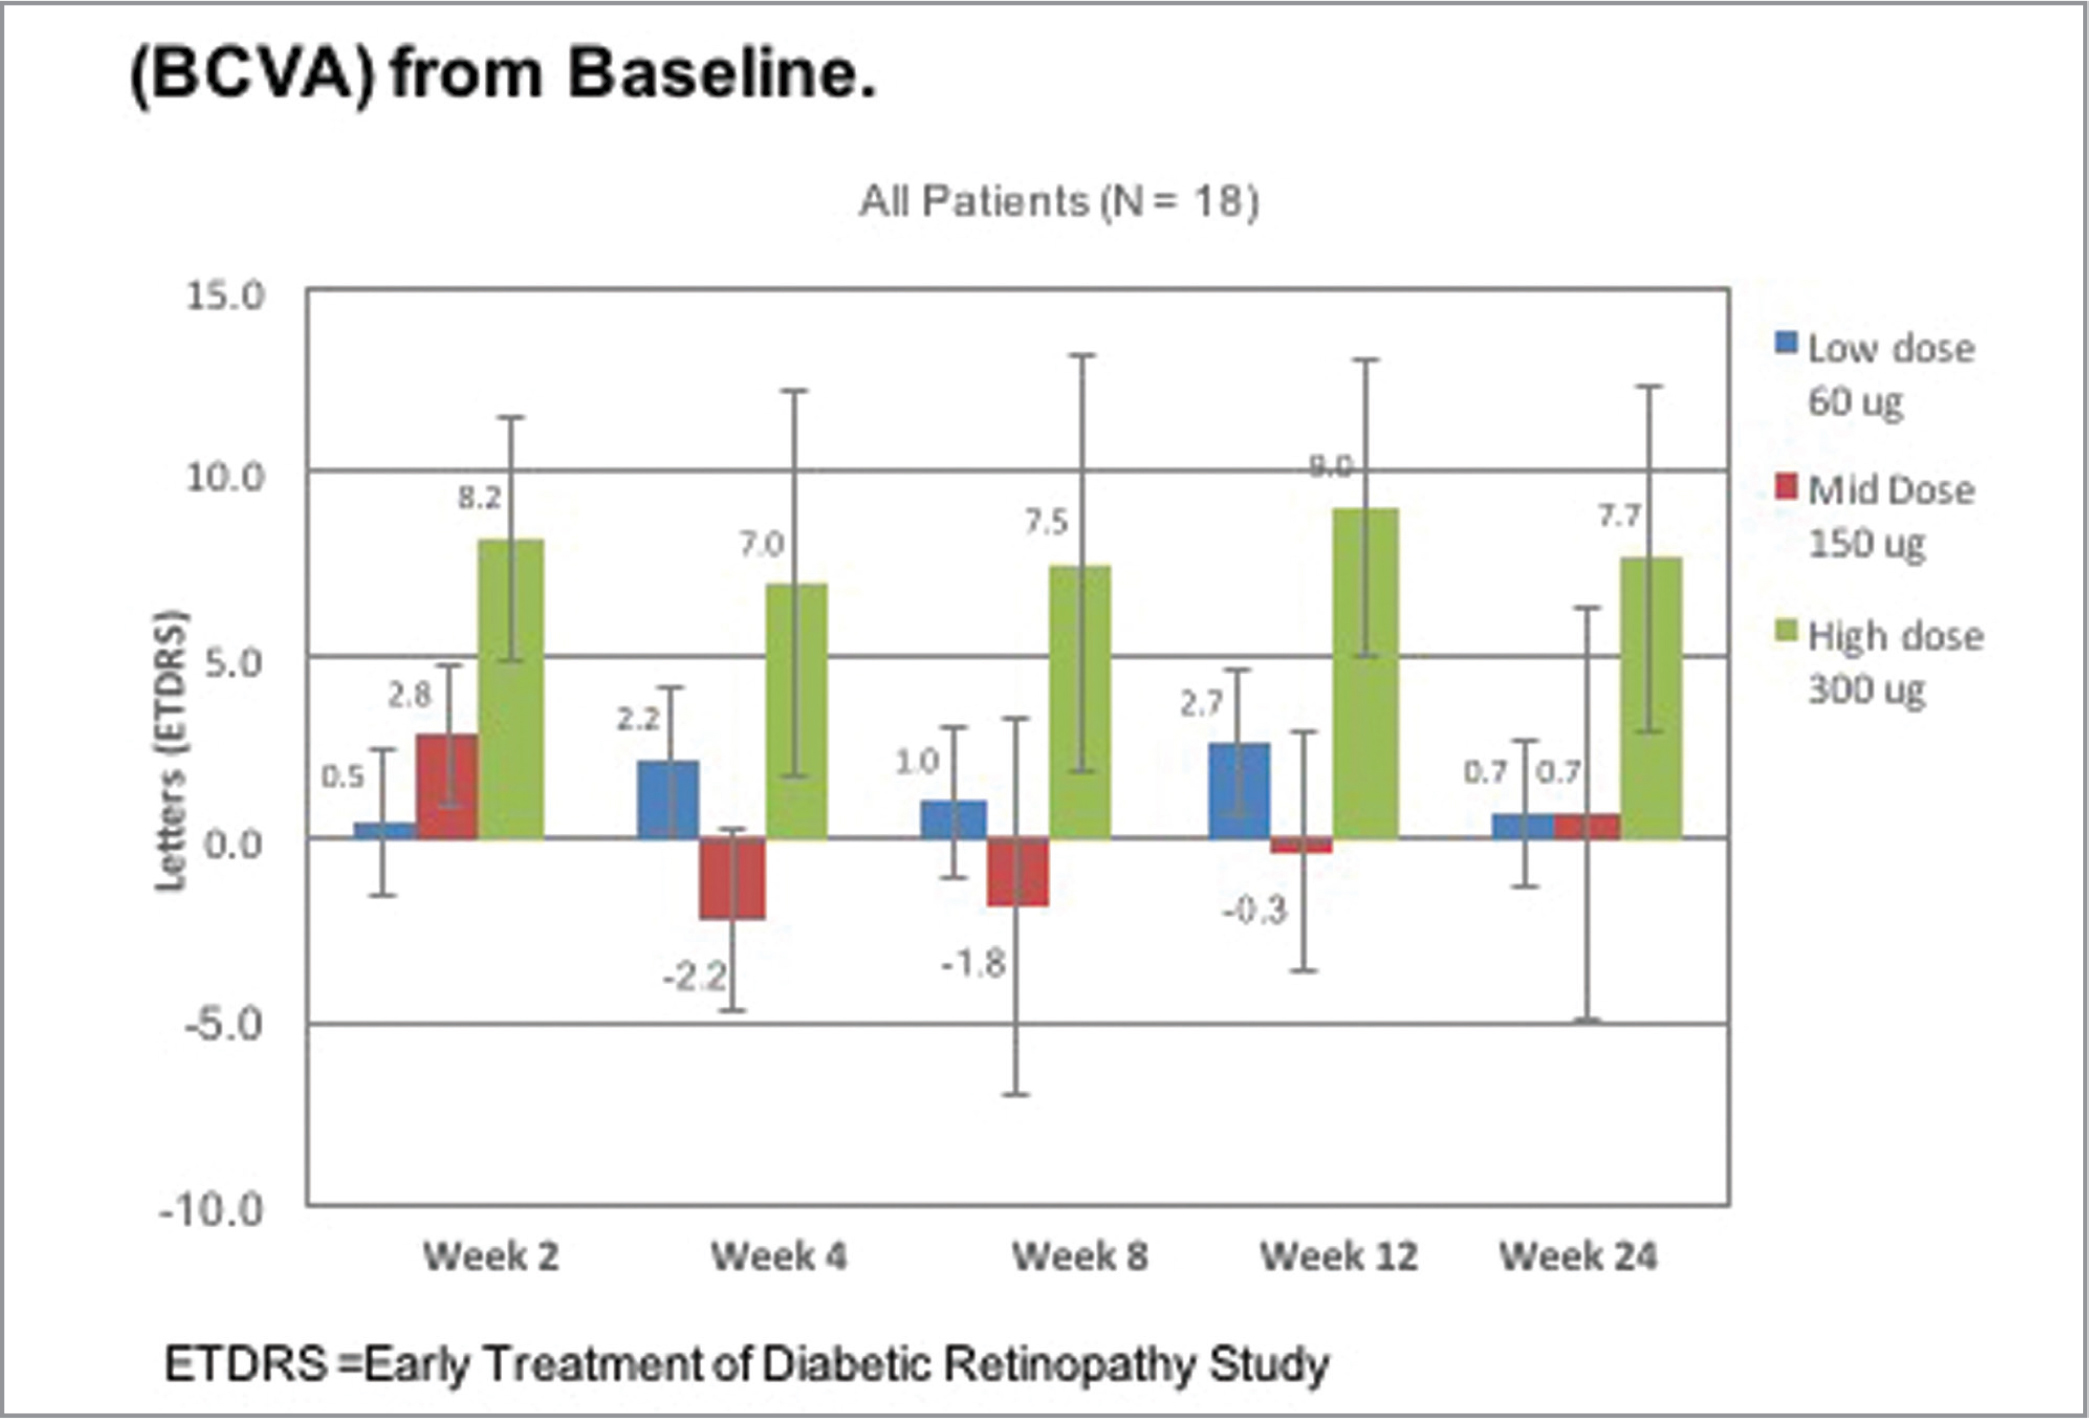 Graph of the mean change in best-corrected visual acuity (BCVA). Data are shown for the low-dose cohort (60 μg), mid-dose cohort (150 μg), and high-dose cohort (300 μg) from weeks 2 through 24. BCVA was measured by EDTRS letter score. Results at week 2 (in some patients up to week 4) are before any standard therapy with anti-vascular endothelial growth factor agents could be administered.